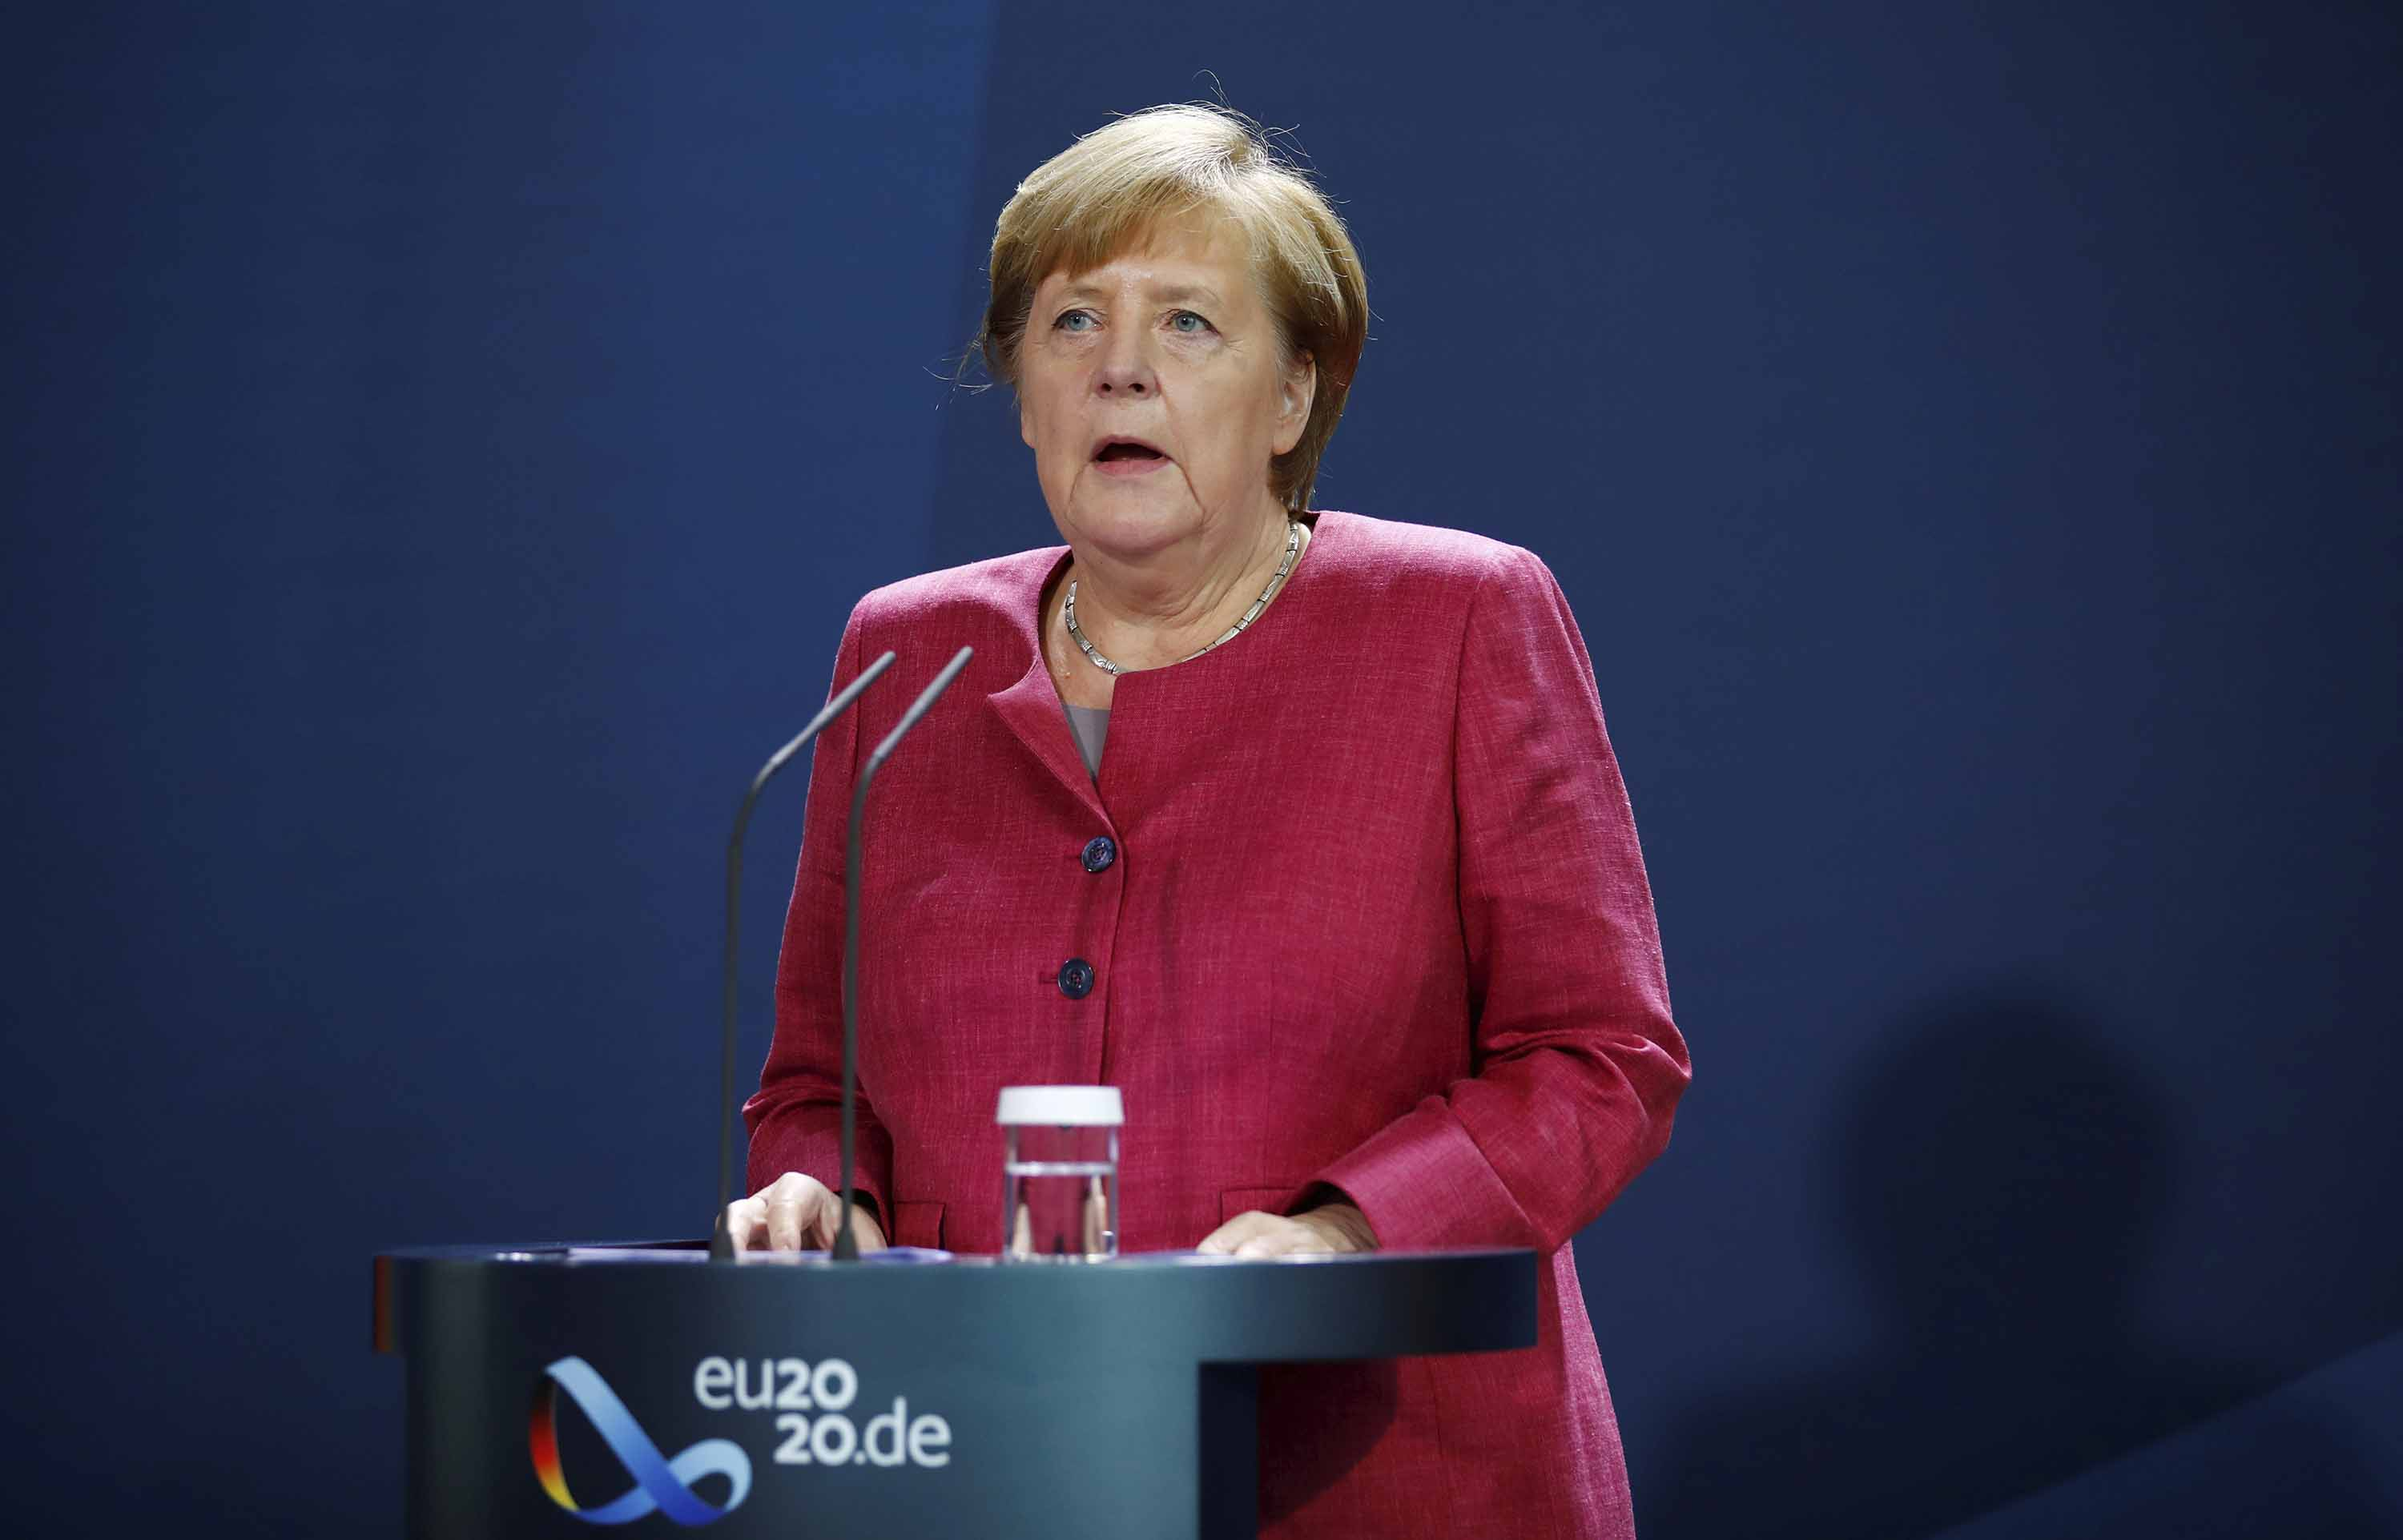 German Chancellor Angela Merkel issued a media statement in Berlin on October 9 after a video conference with German city mayors about the spread of the coronavirus in German cities.